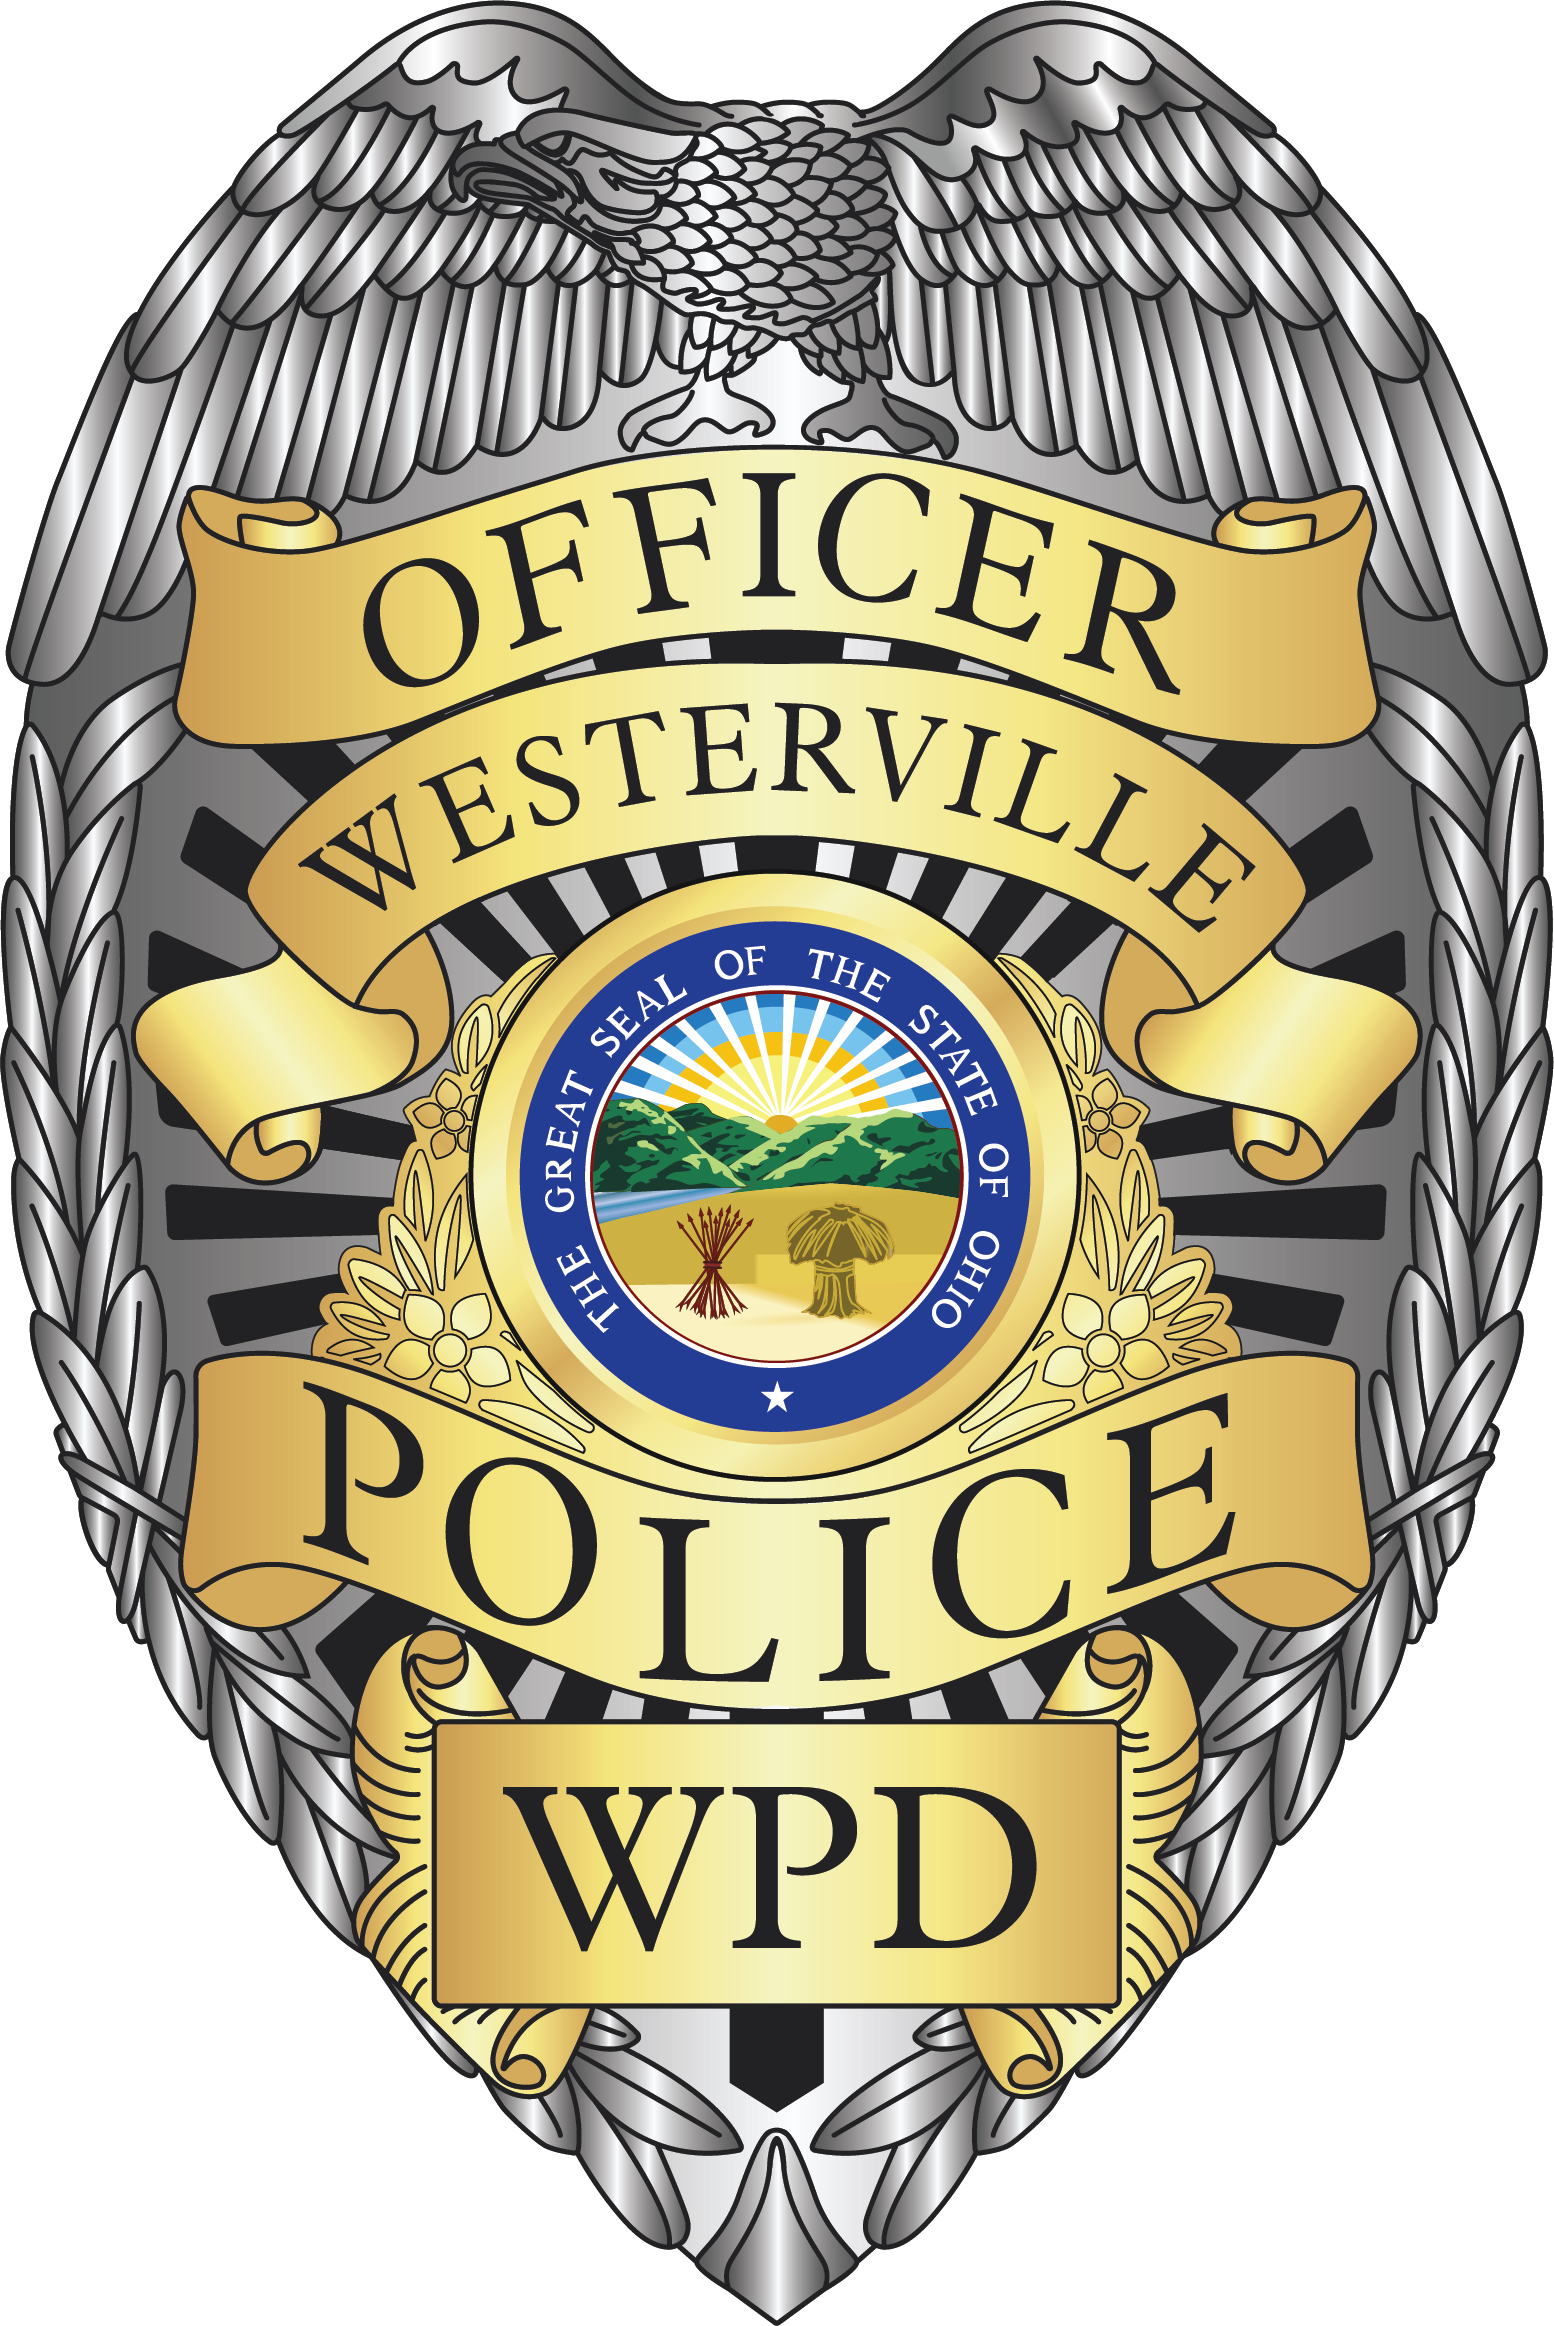 Westerville Division of Police Badge